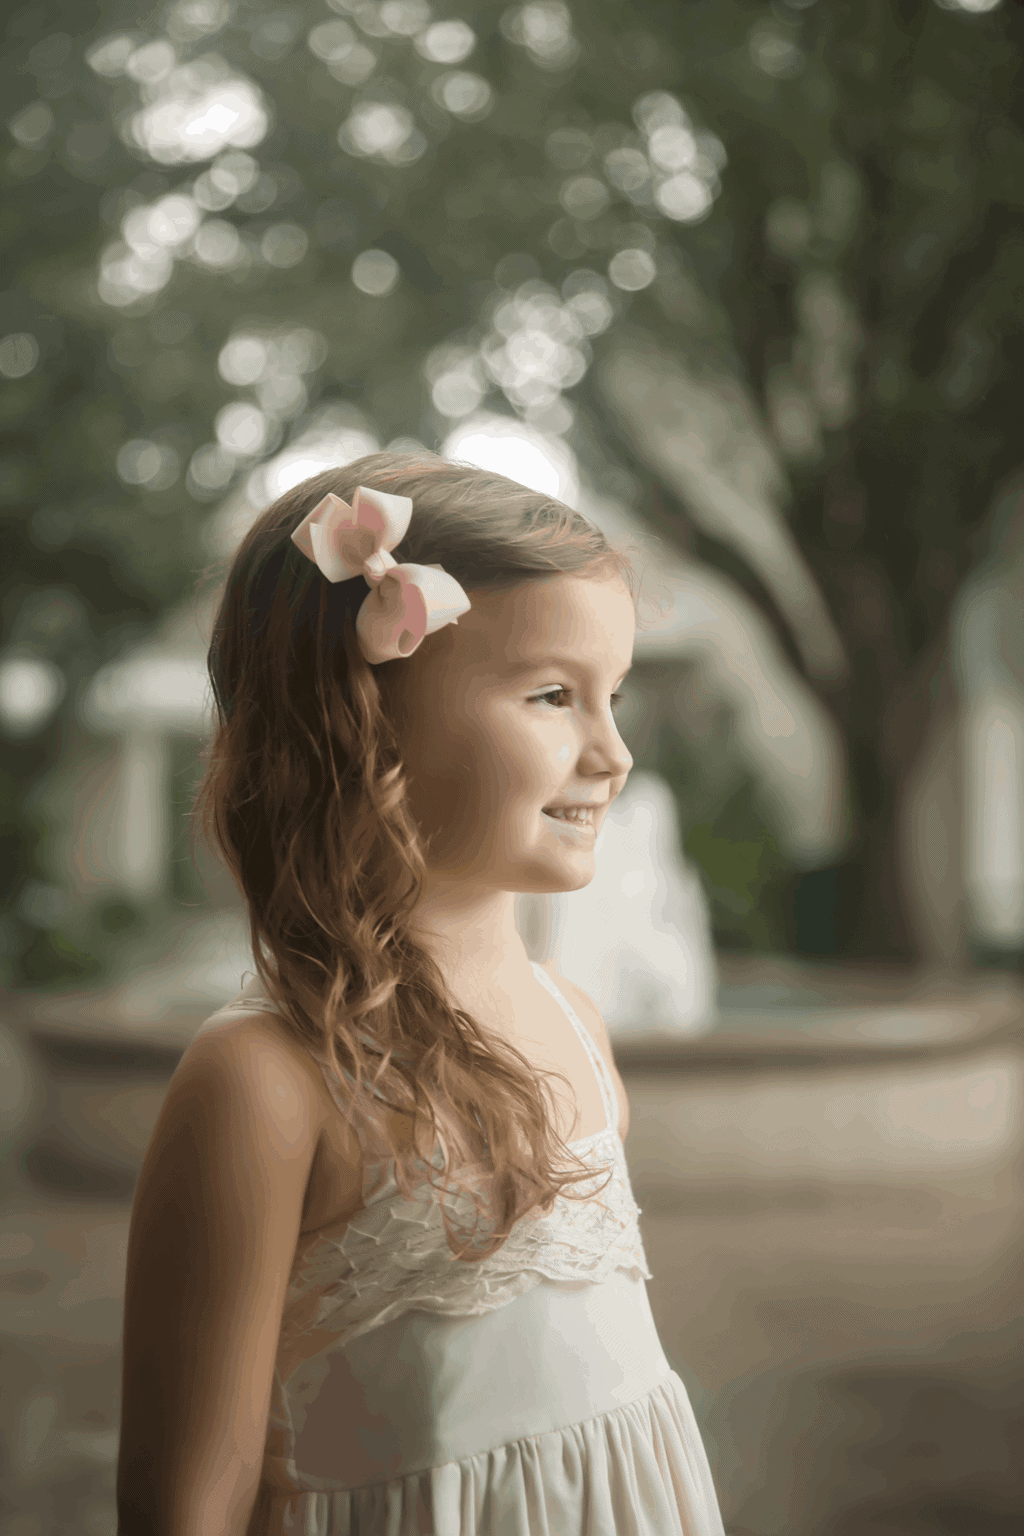 5-year-old-girl-smiling-at-